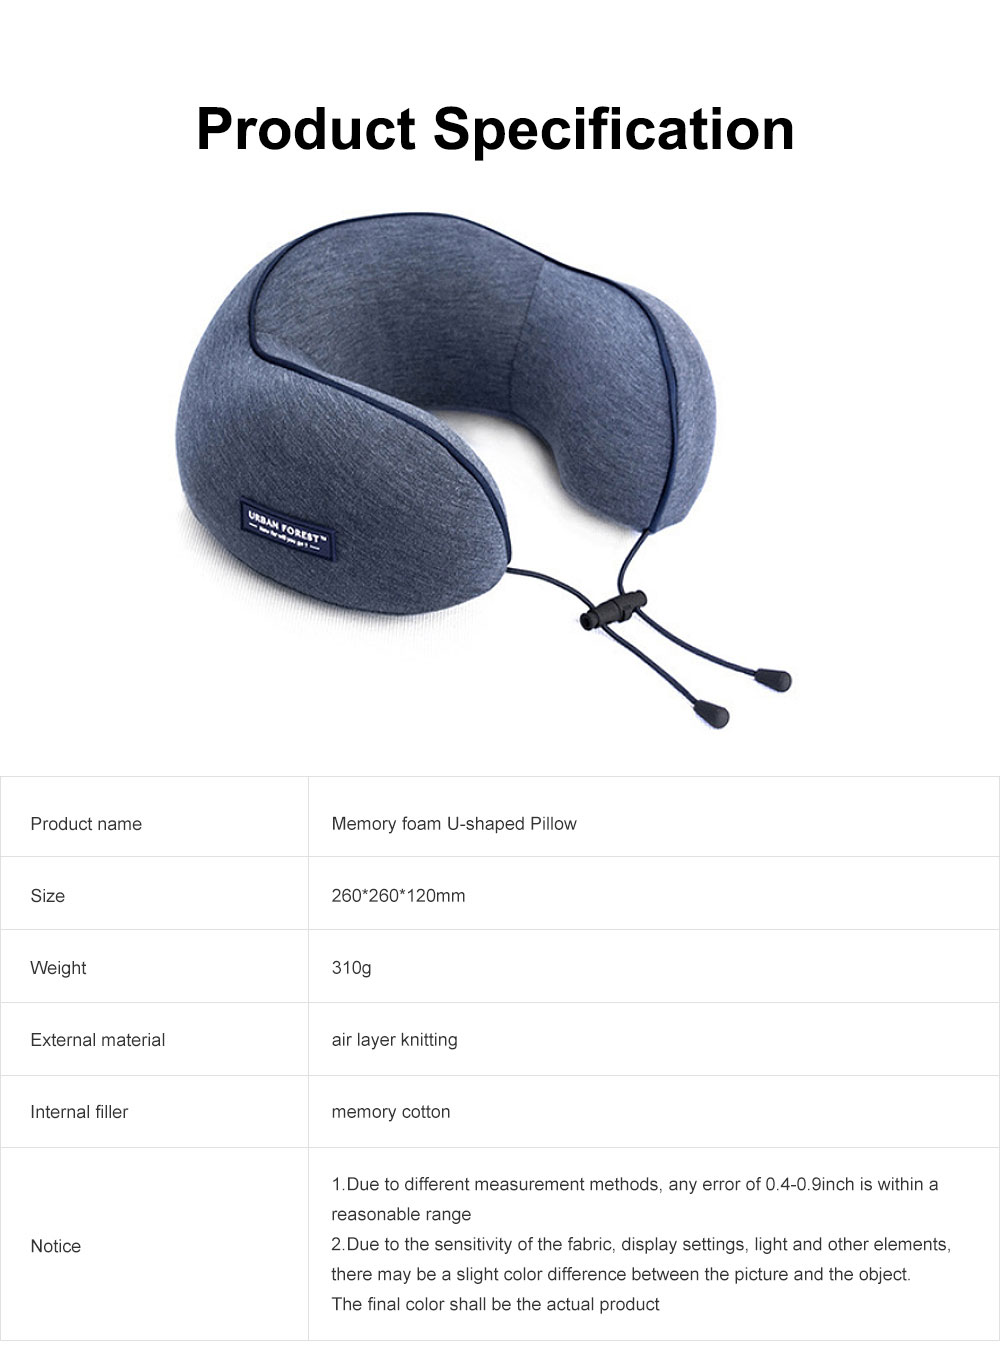 Memory Foam U-Shaped Pillow Comfortable Breathable Neck Pillow Travel Pillow for Home Car Airplane 6